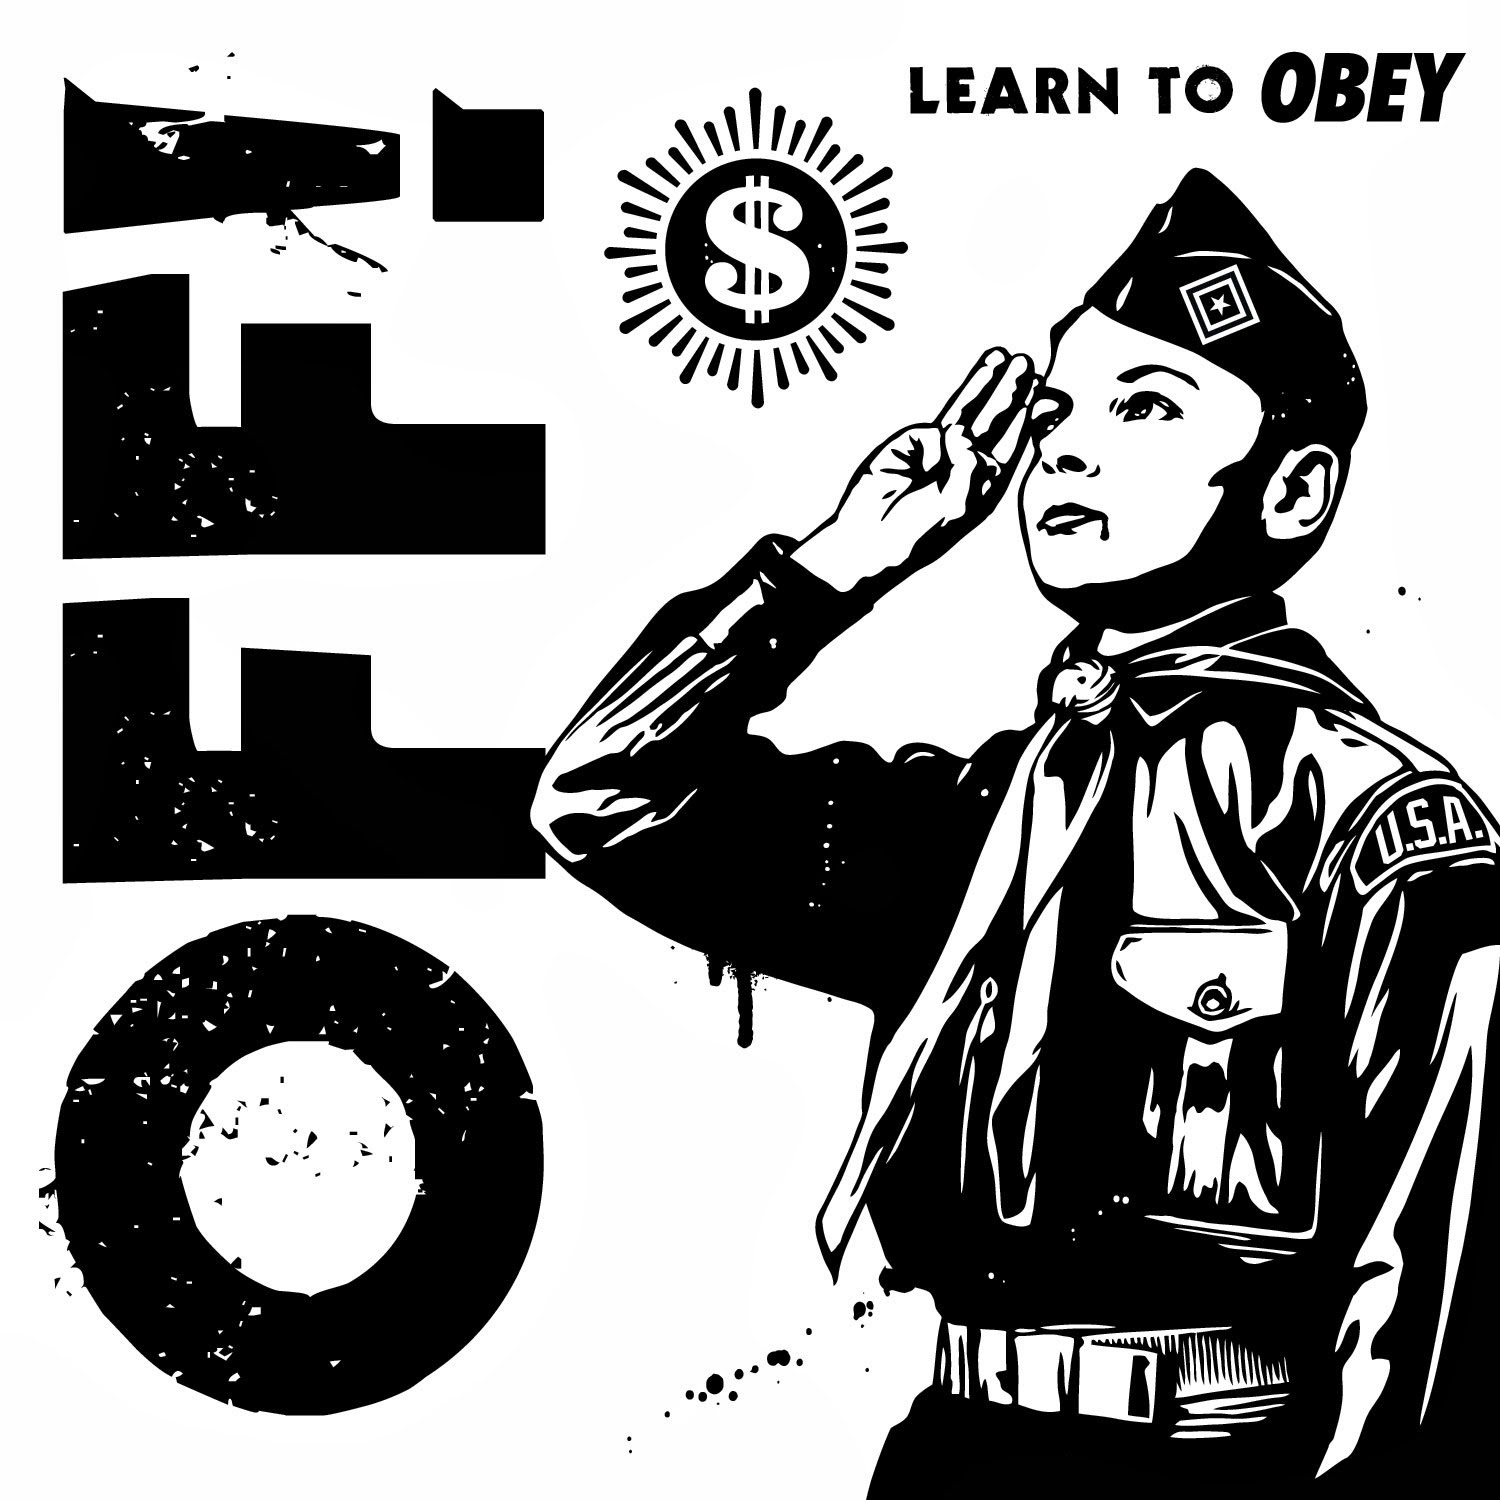 "Record Store Day 2014 Exclusive Off! x Obey Giant ""Learn To Obey"" 7"" Single Vinyl Record"